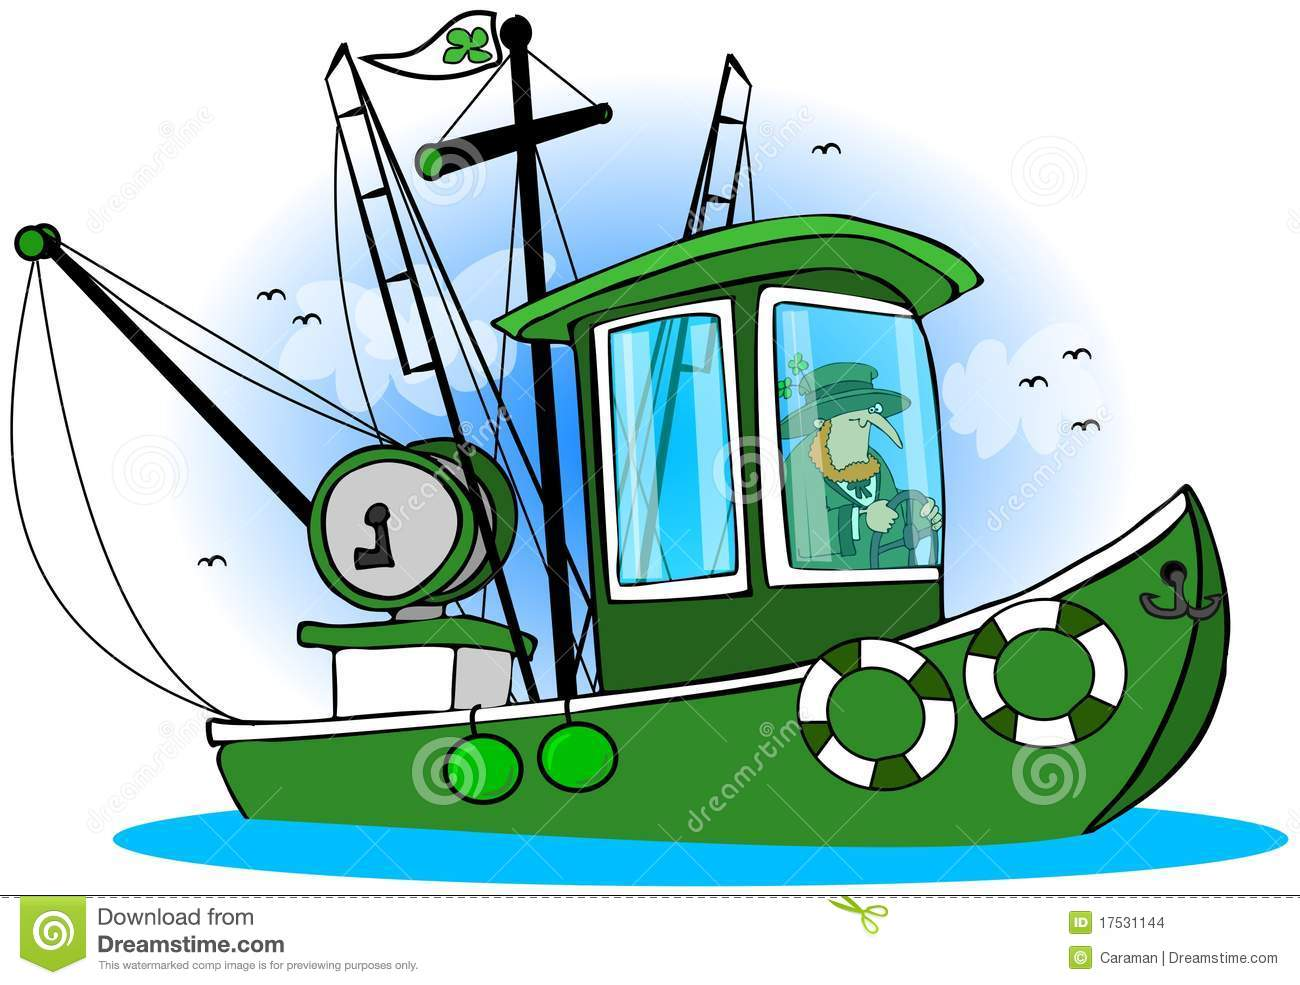 Leprechaun Fishing Boat stock illustration. Illustration of ship - 17531144